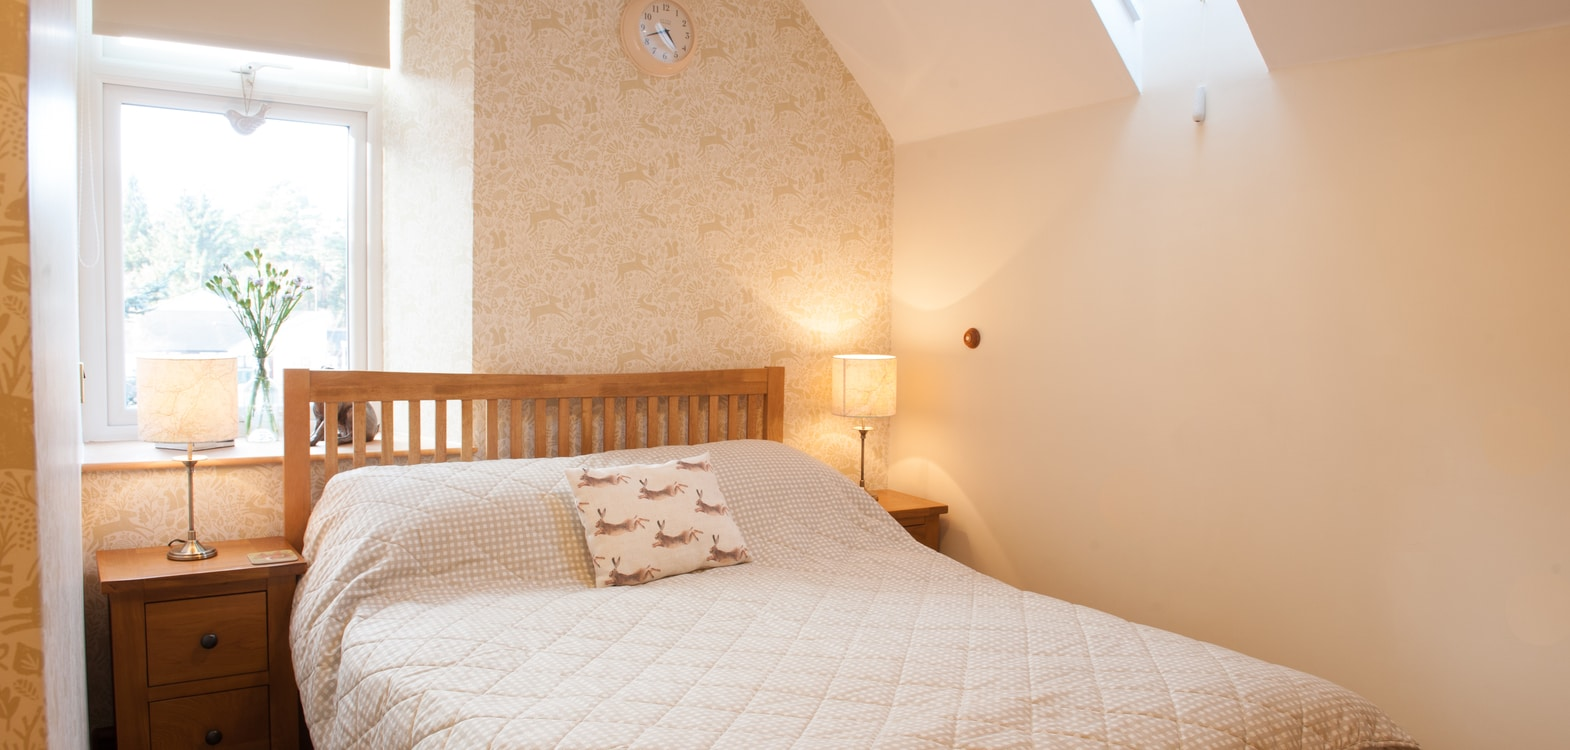 Double bed made up with pale bedding in a light and bright bedroom at Strathallan Guest House